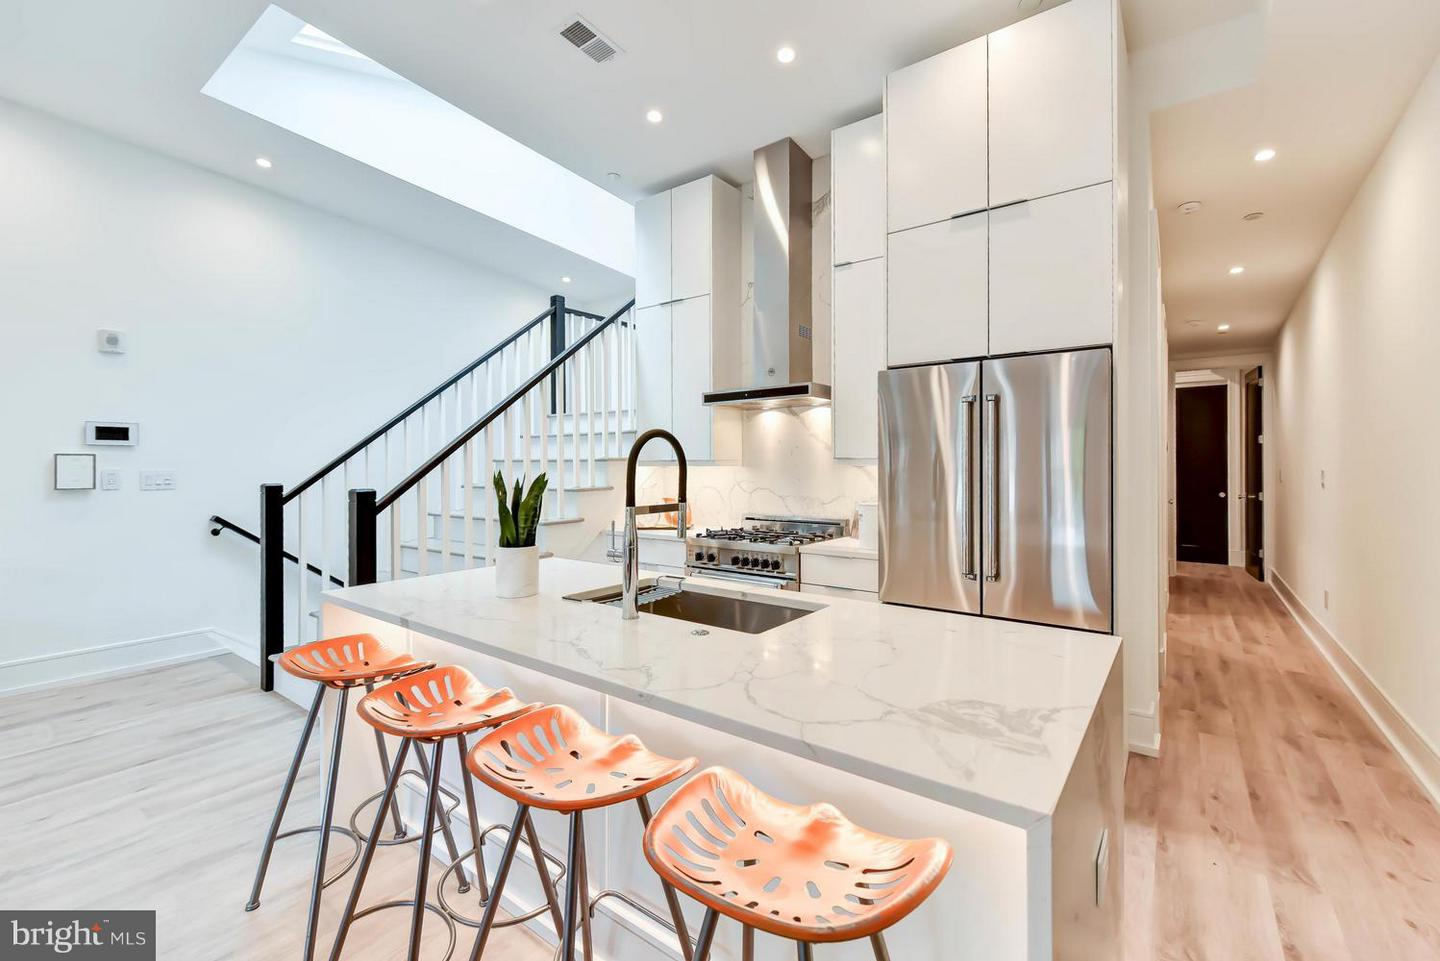 Single Family Home for Sale at 1524 18th St Nw #7 1524 18th St Nw #7 Washington, District Of Columbia 20036 United States